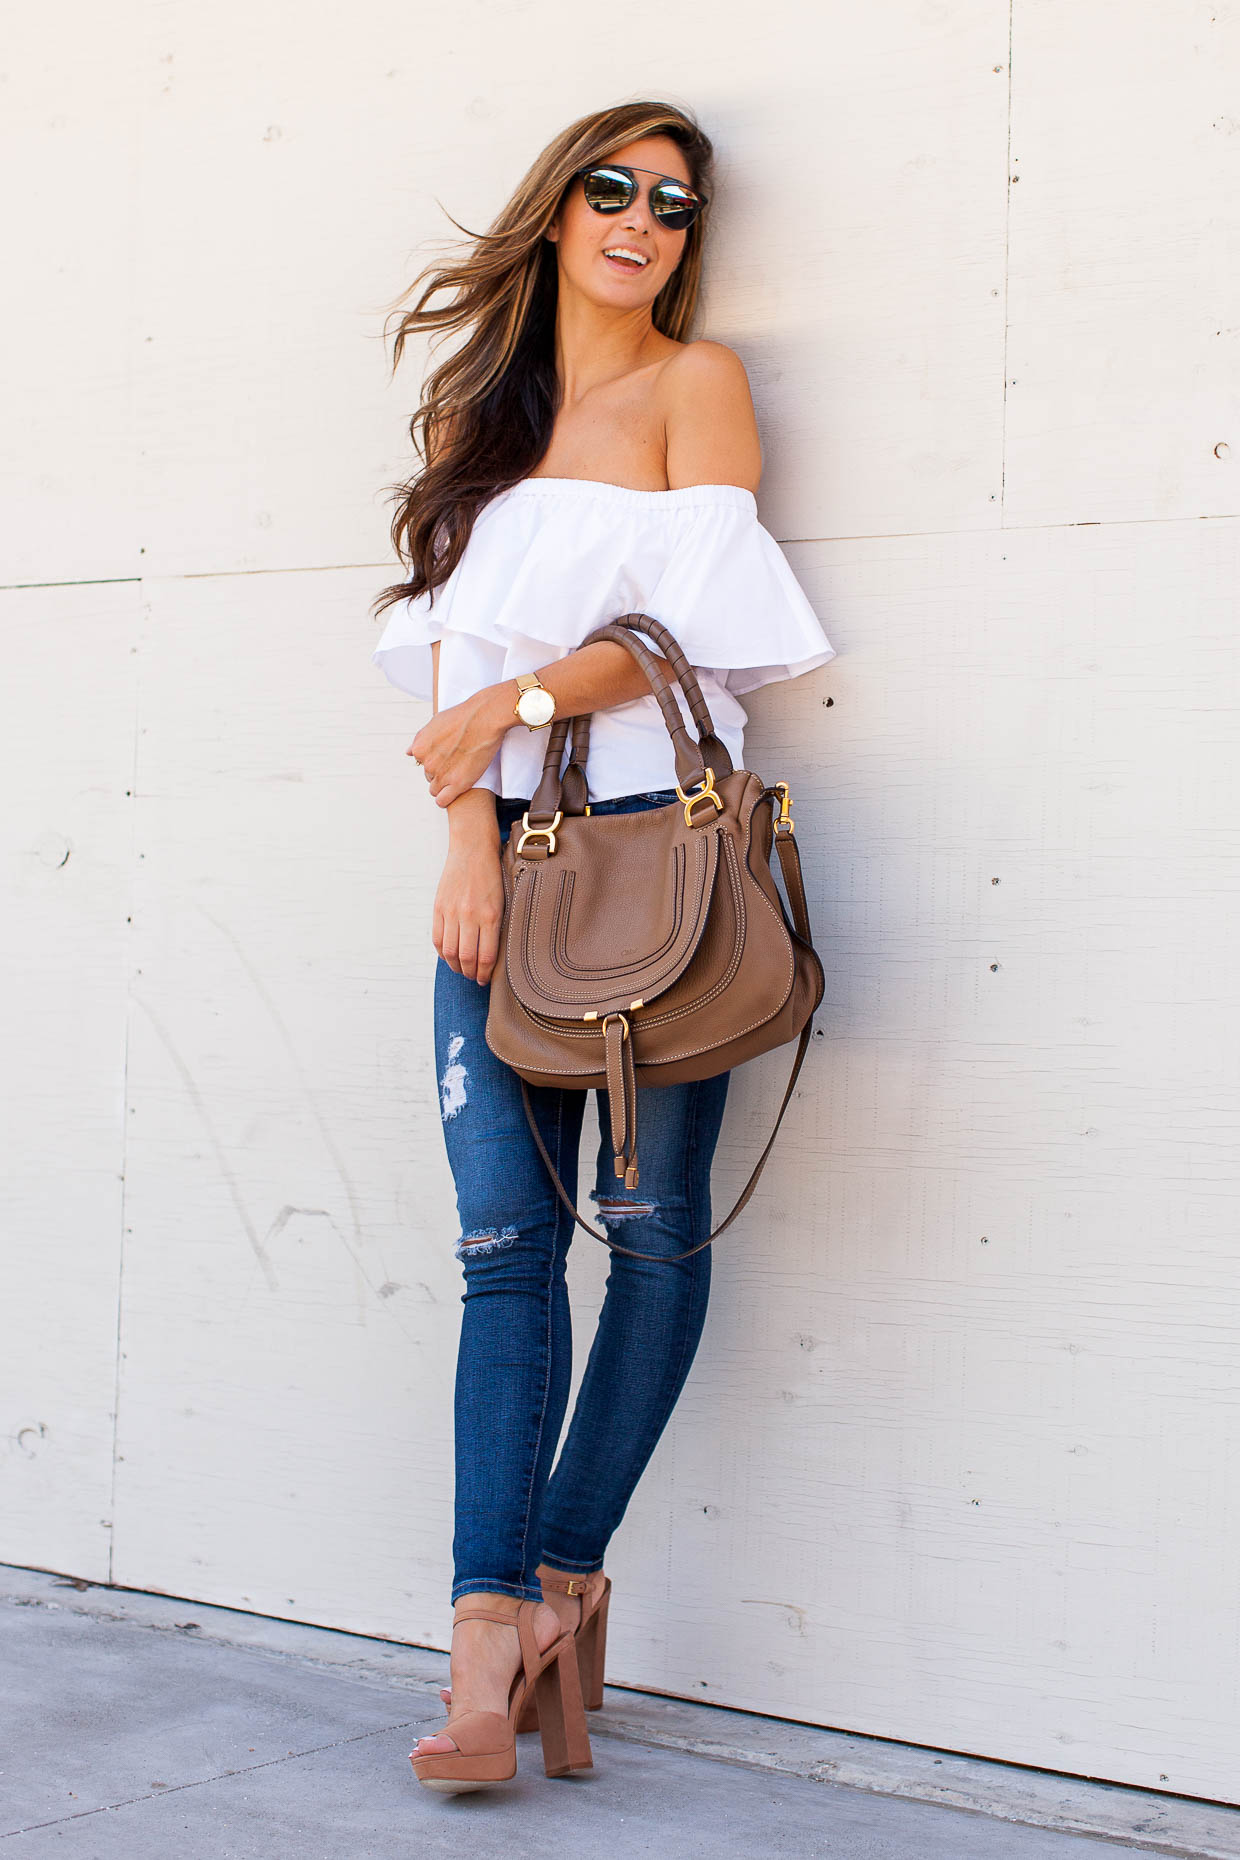 Jessi Afshin is looking ultra glam in this statement white off the shoulder top; worn with skinny jeans and platforms this is simply the perfect style for summer! Top: Topshop, Jeans: AG, Shoes: Steve Madden.